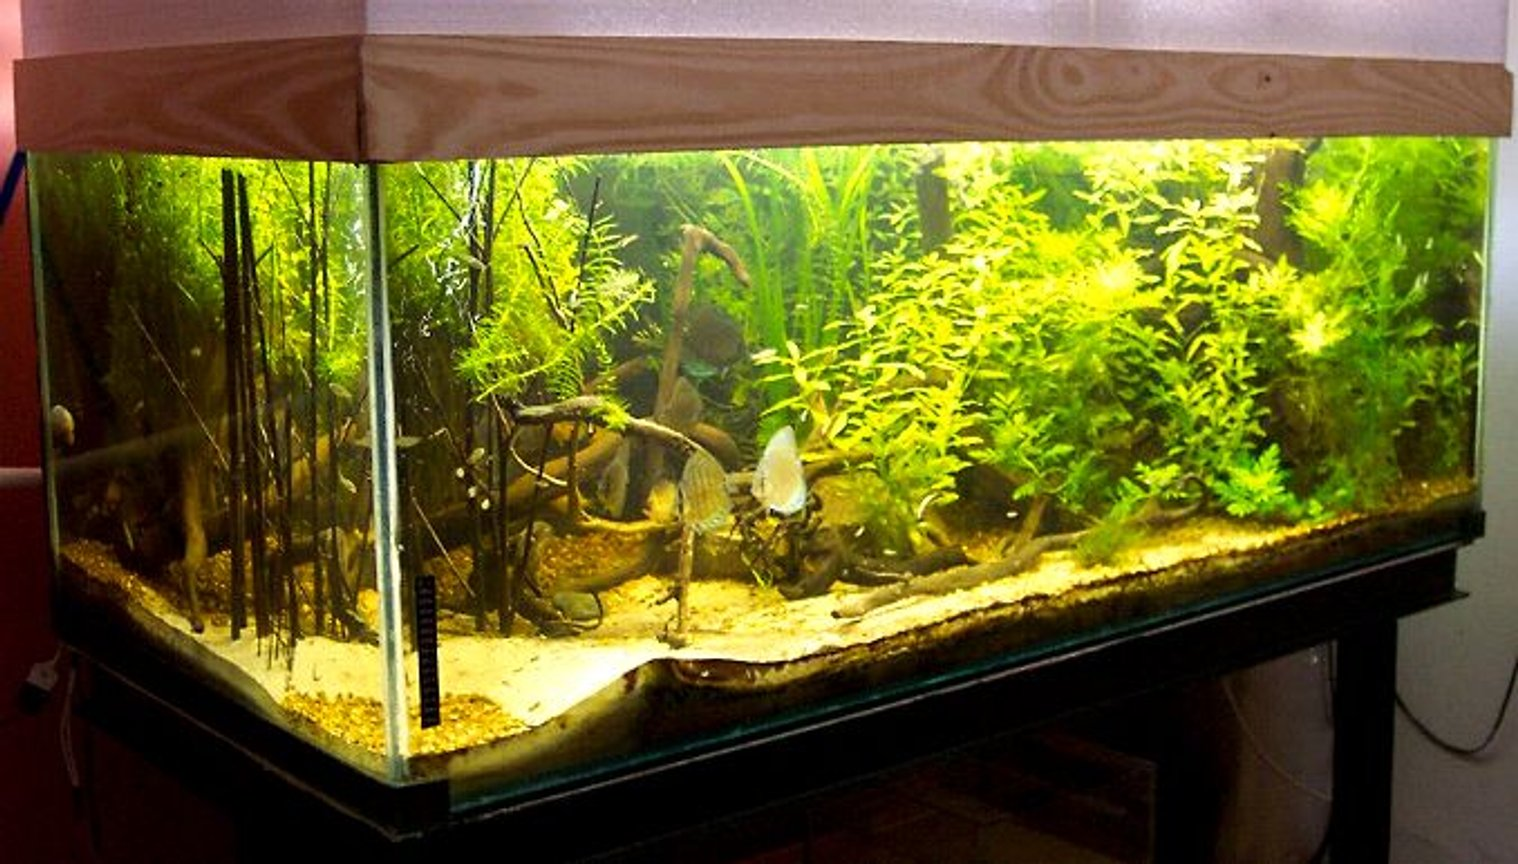 planted tank (mostly live plants and fish) - 800 lts (170 x 80 x 60)